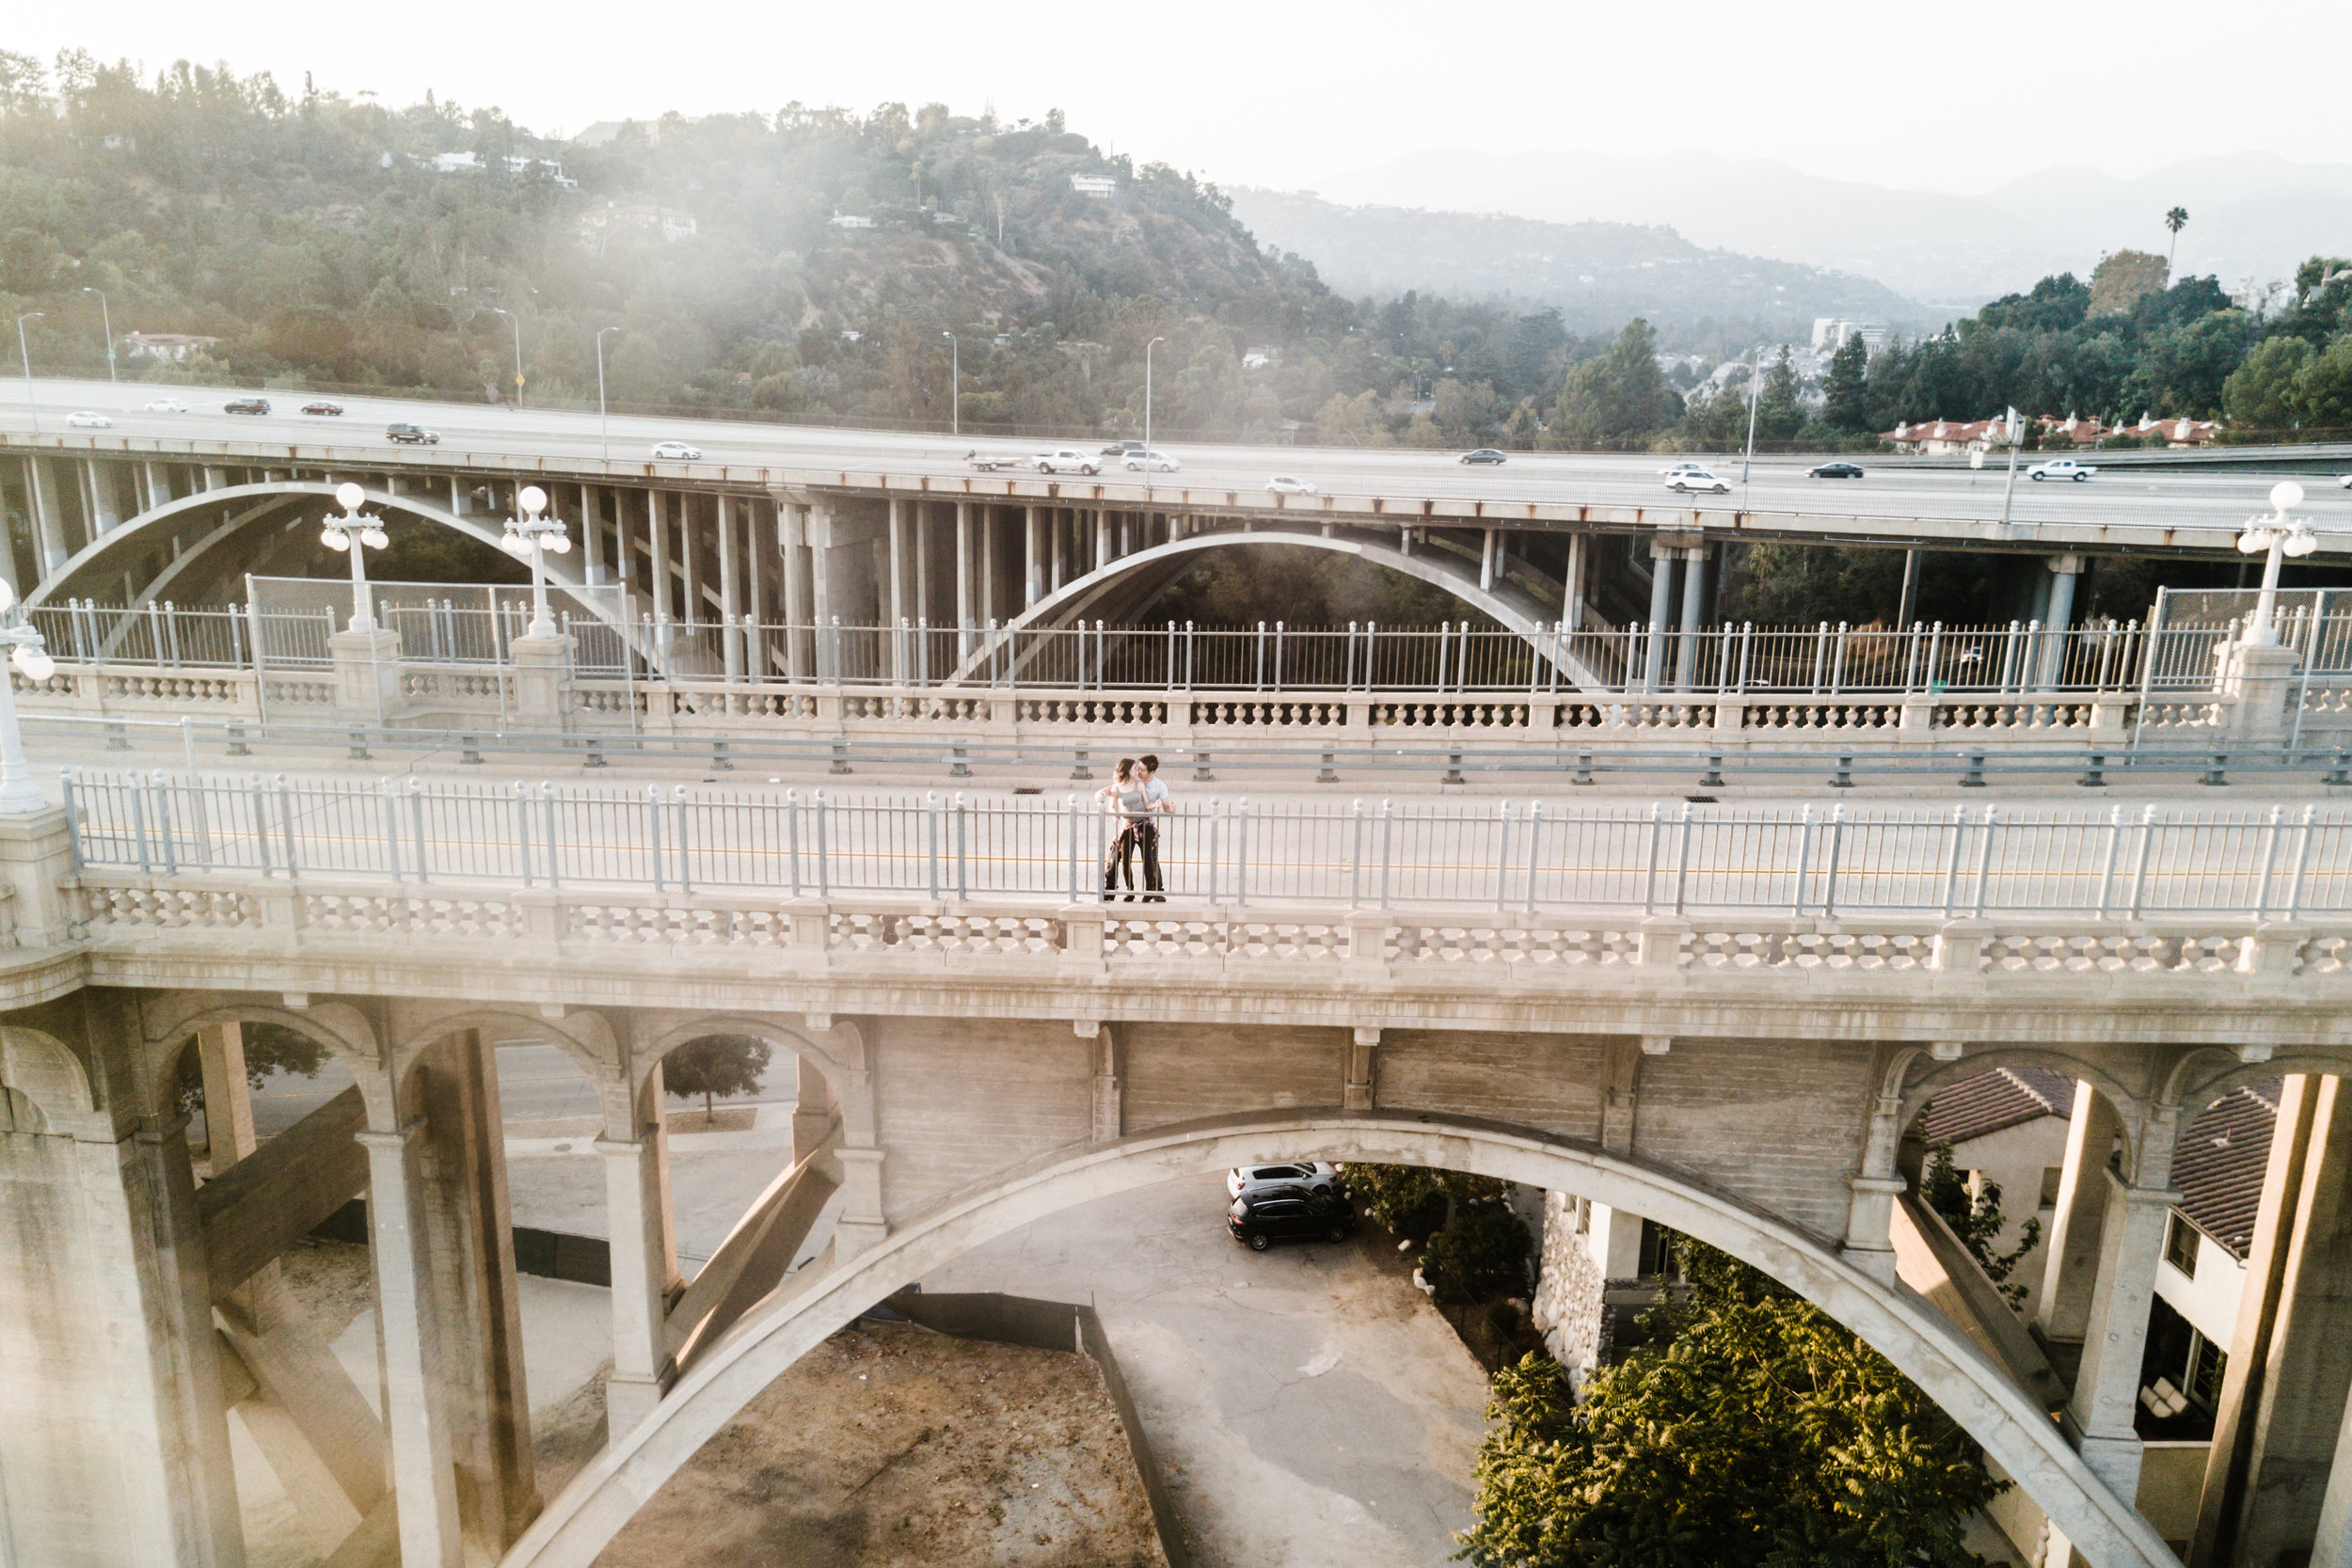 DJI Mavic Pro - Colorado Street Bridge, Pasadena, CA | Engagement Session